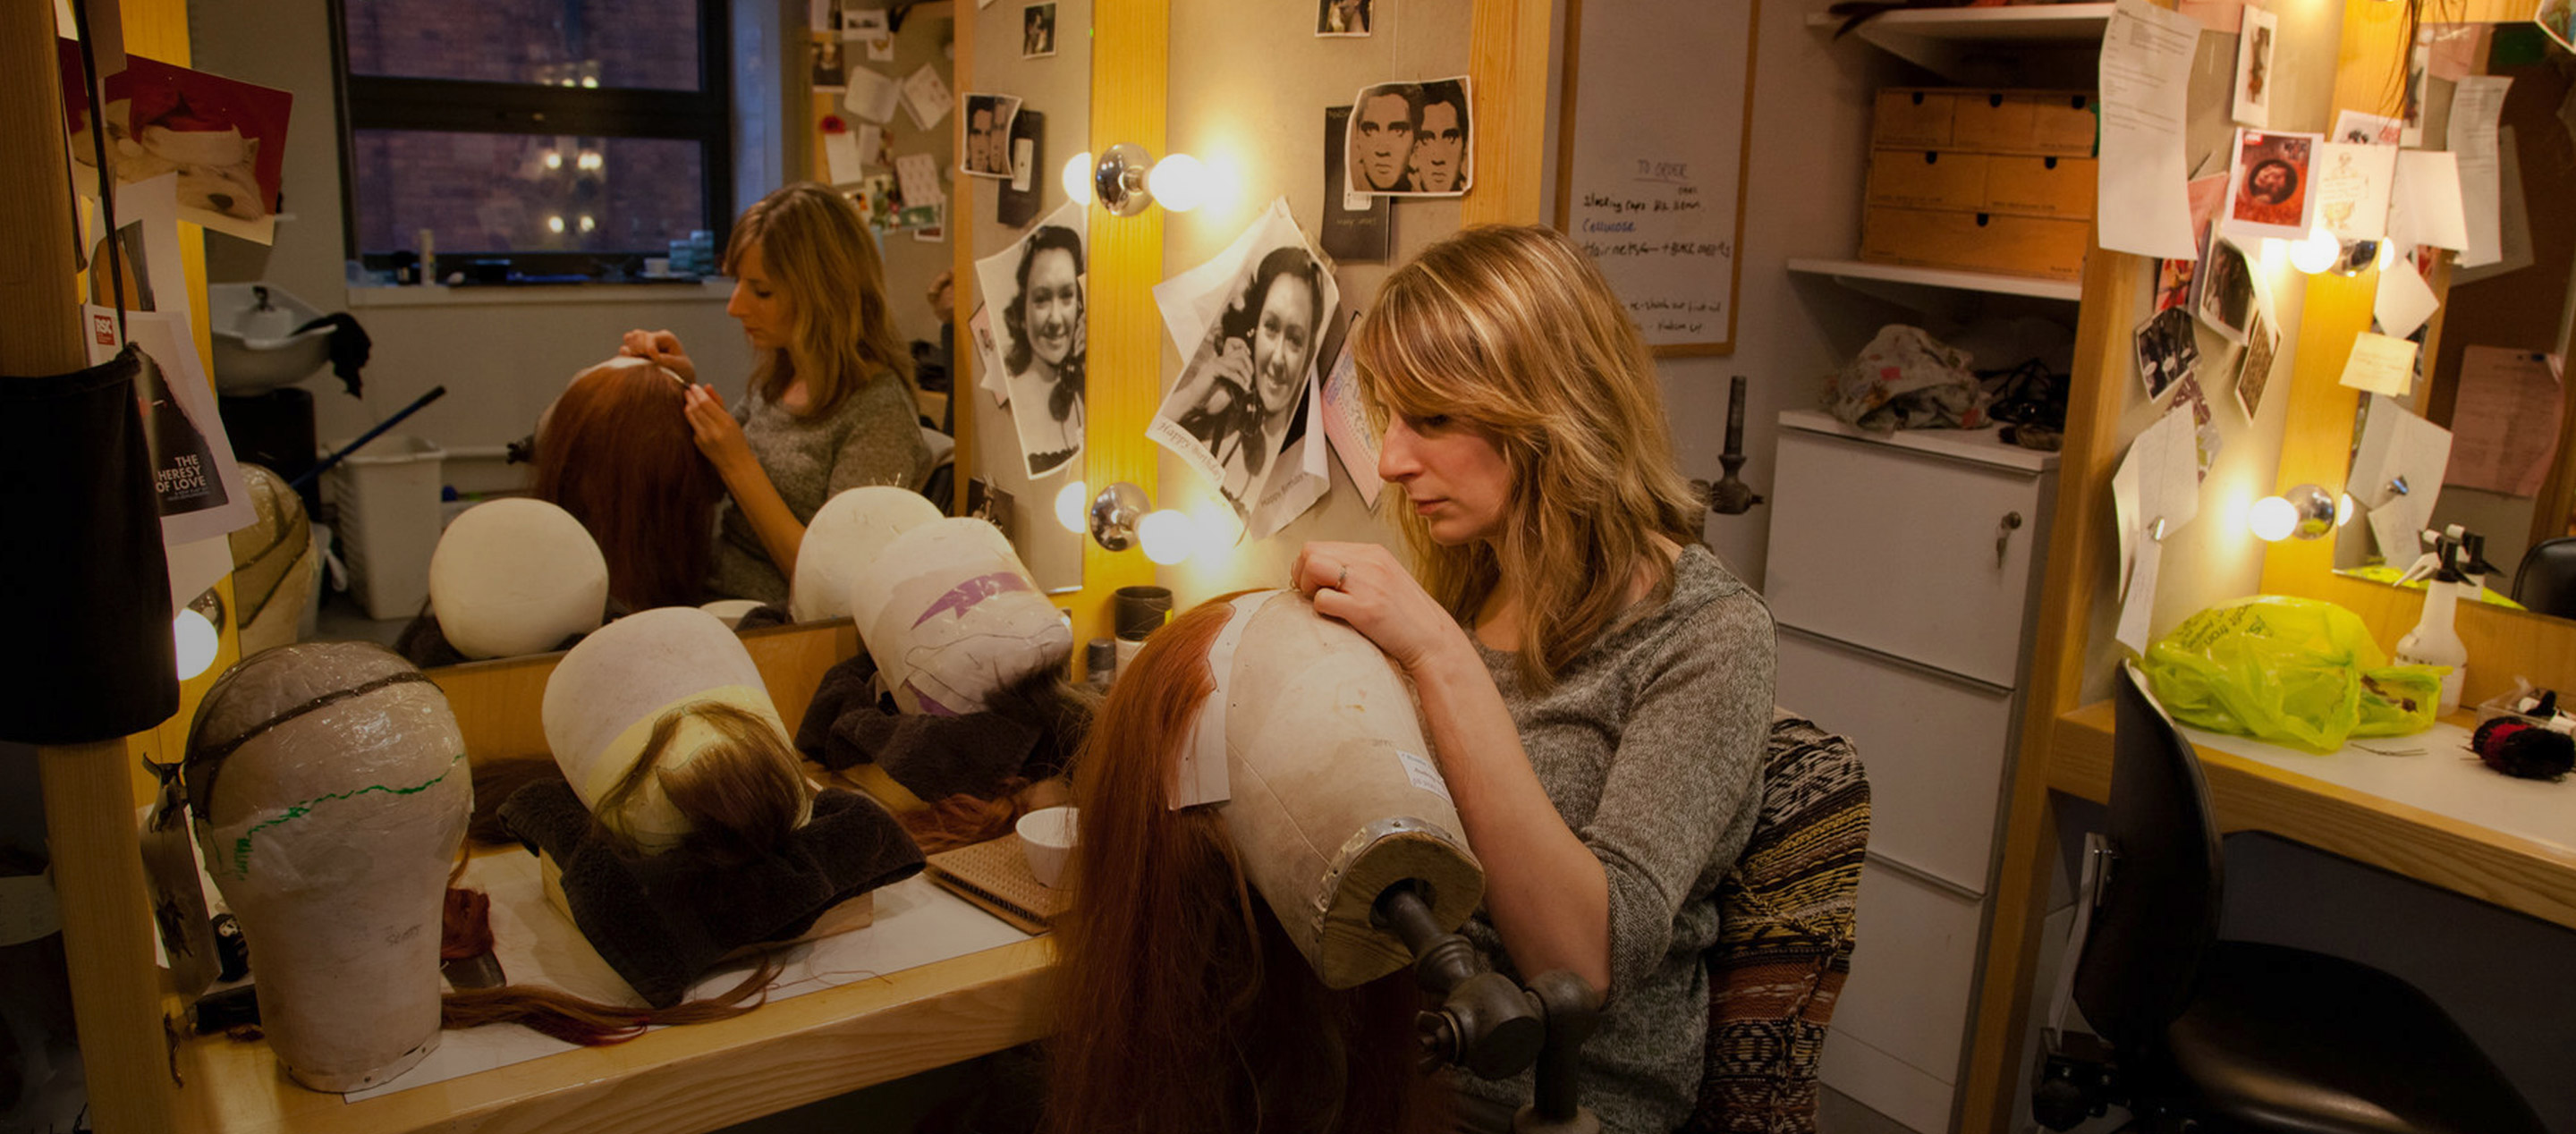 A blonde woman holding a head model and stitching a long red wig in a dressing room full of photos and wigs